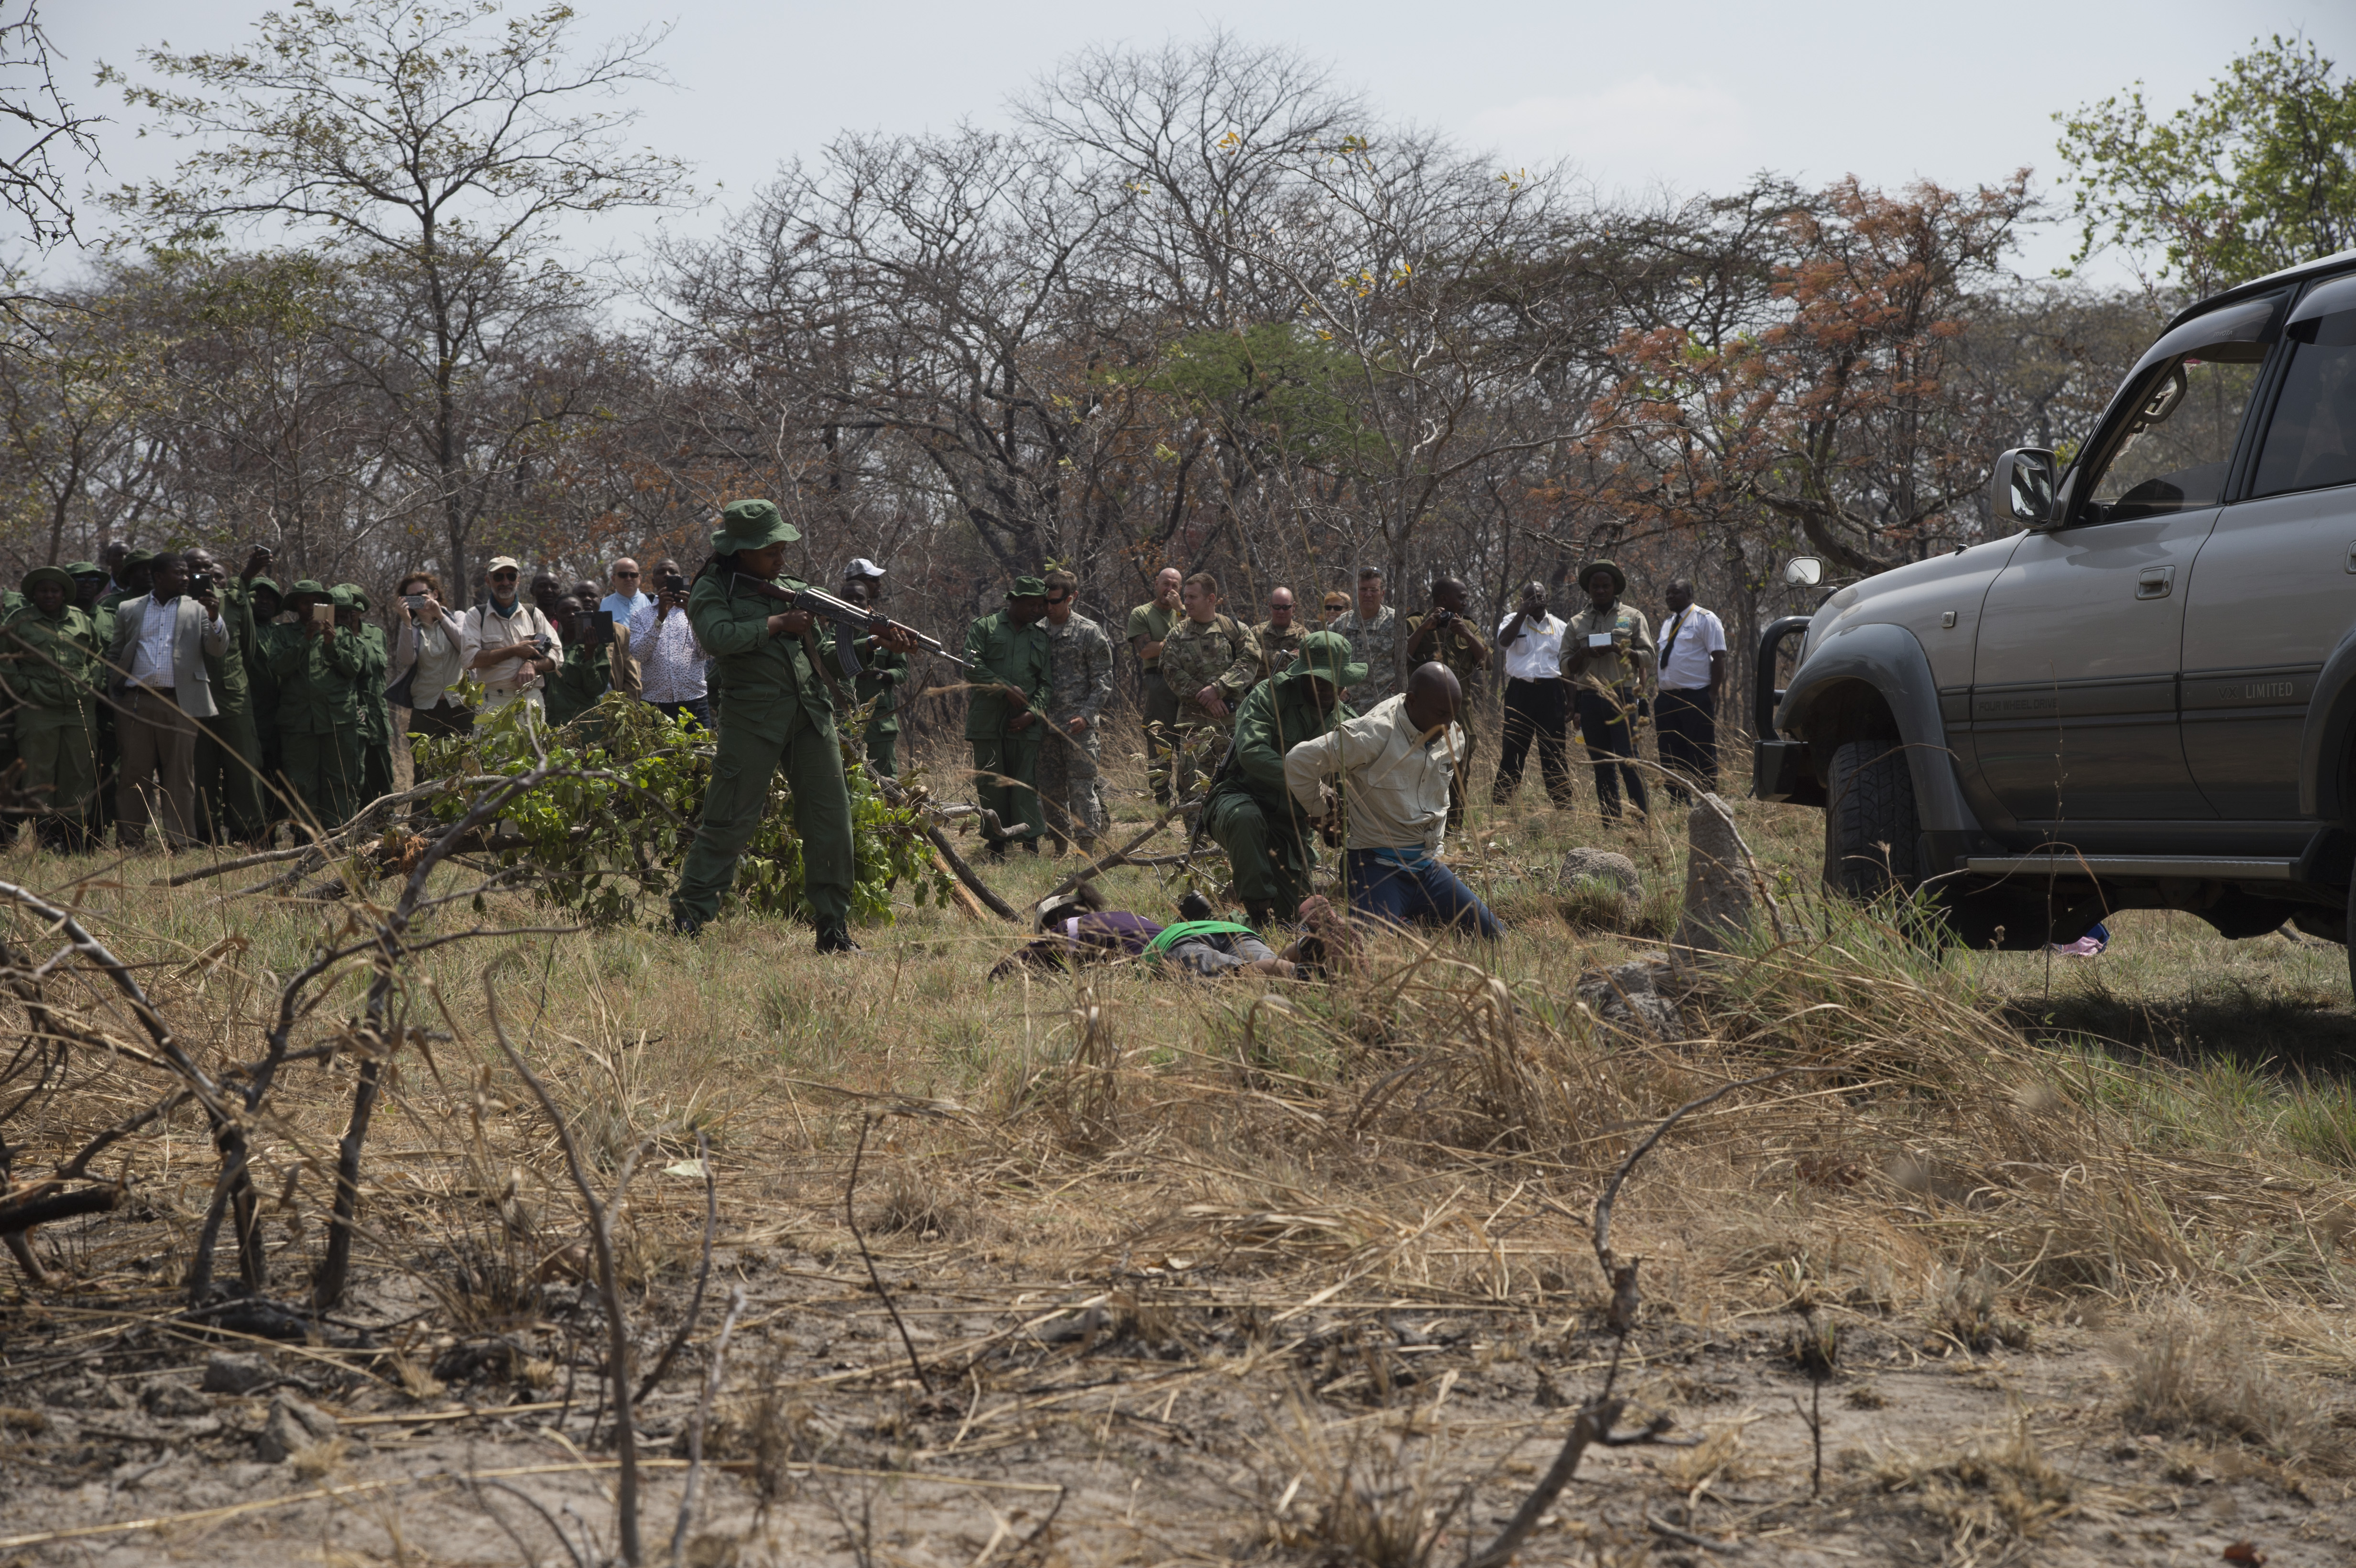 Tanzania park and game reserve rangers apprehend and search simulated poachers who tried to escape in a vehicle during a demonstration August 24, 2016, at the Rungwa Game Reserve, Tanzania. Rangers recently trained with members of the 403rd Civil Affairs Battalion, a component of Combined Joint Task Force - Horn of Africa, and North Carolina Army National Guard to learn techniques to track and capture poachers. (U.S. Air Force photos by Staff Sgt. Eric Summers Jr.)